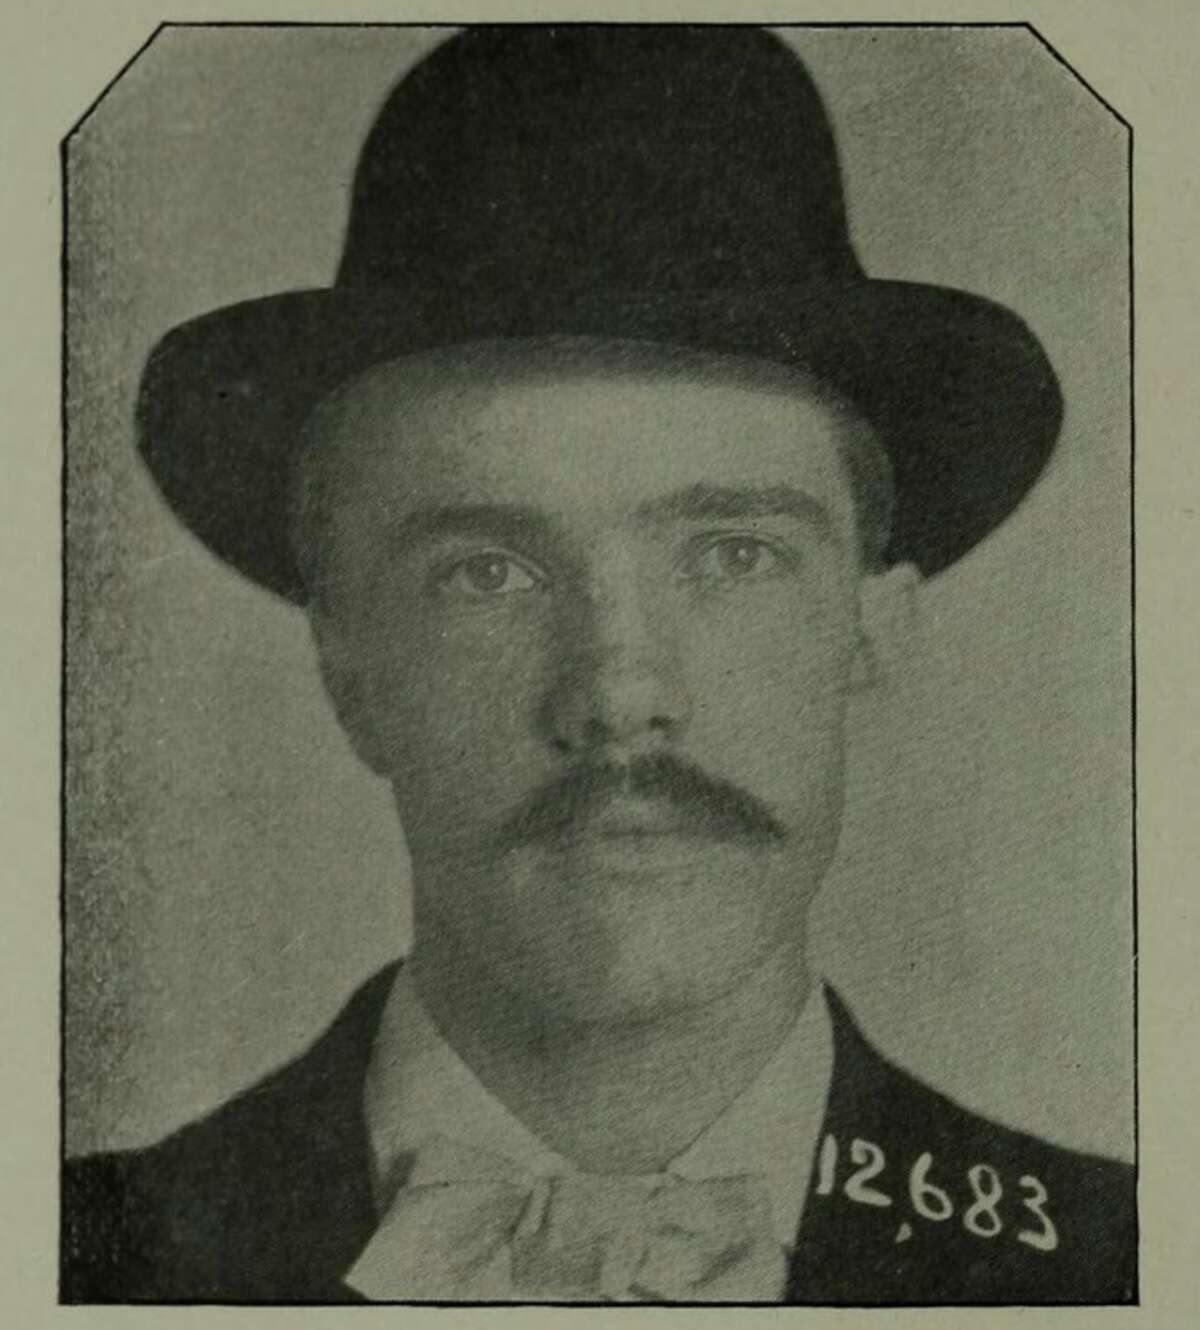 The mugshot of Theodore Durrant, the infamous Demon of the Belfry.